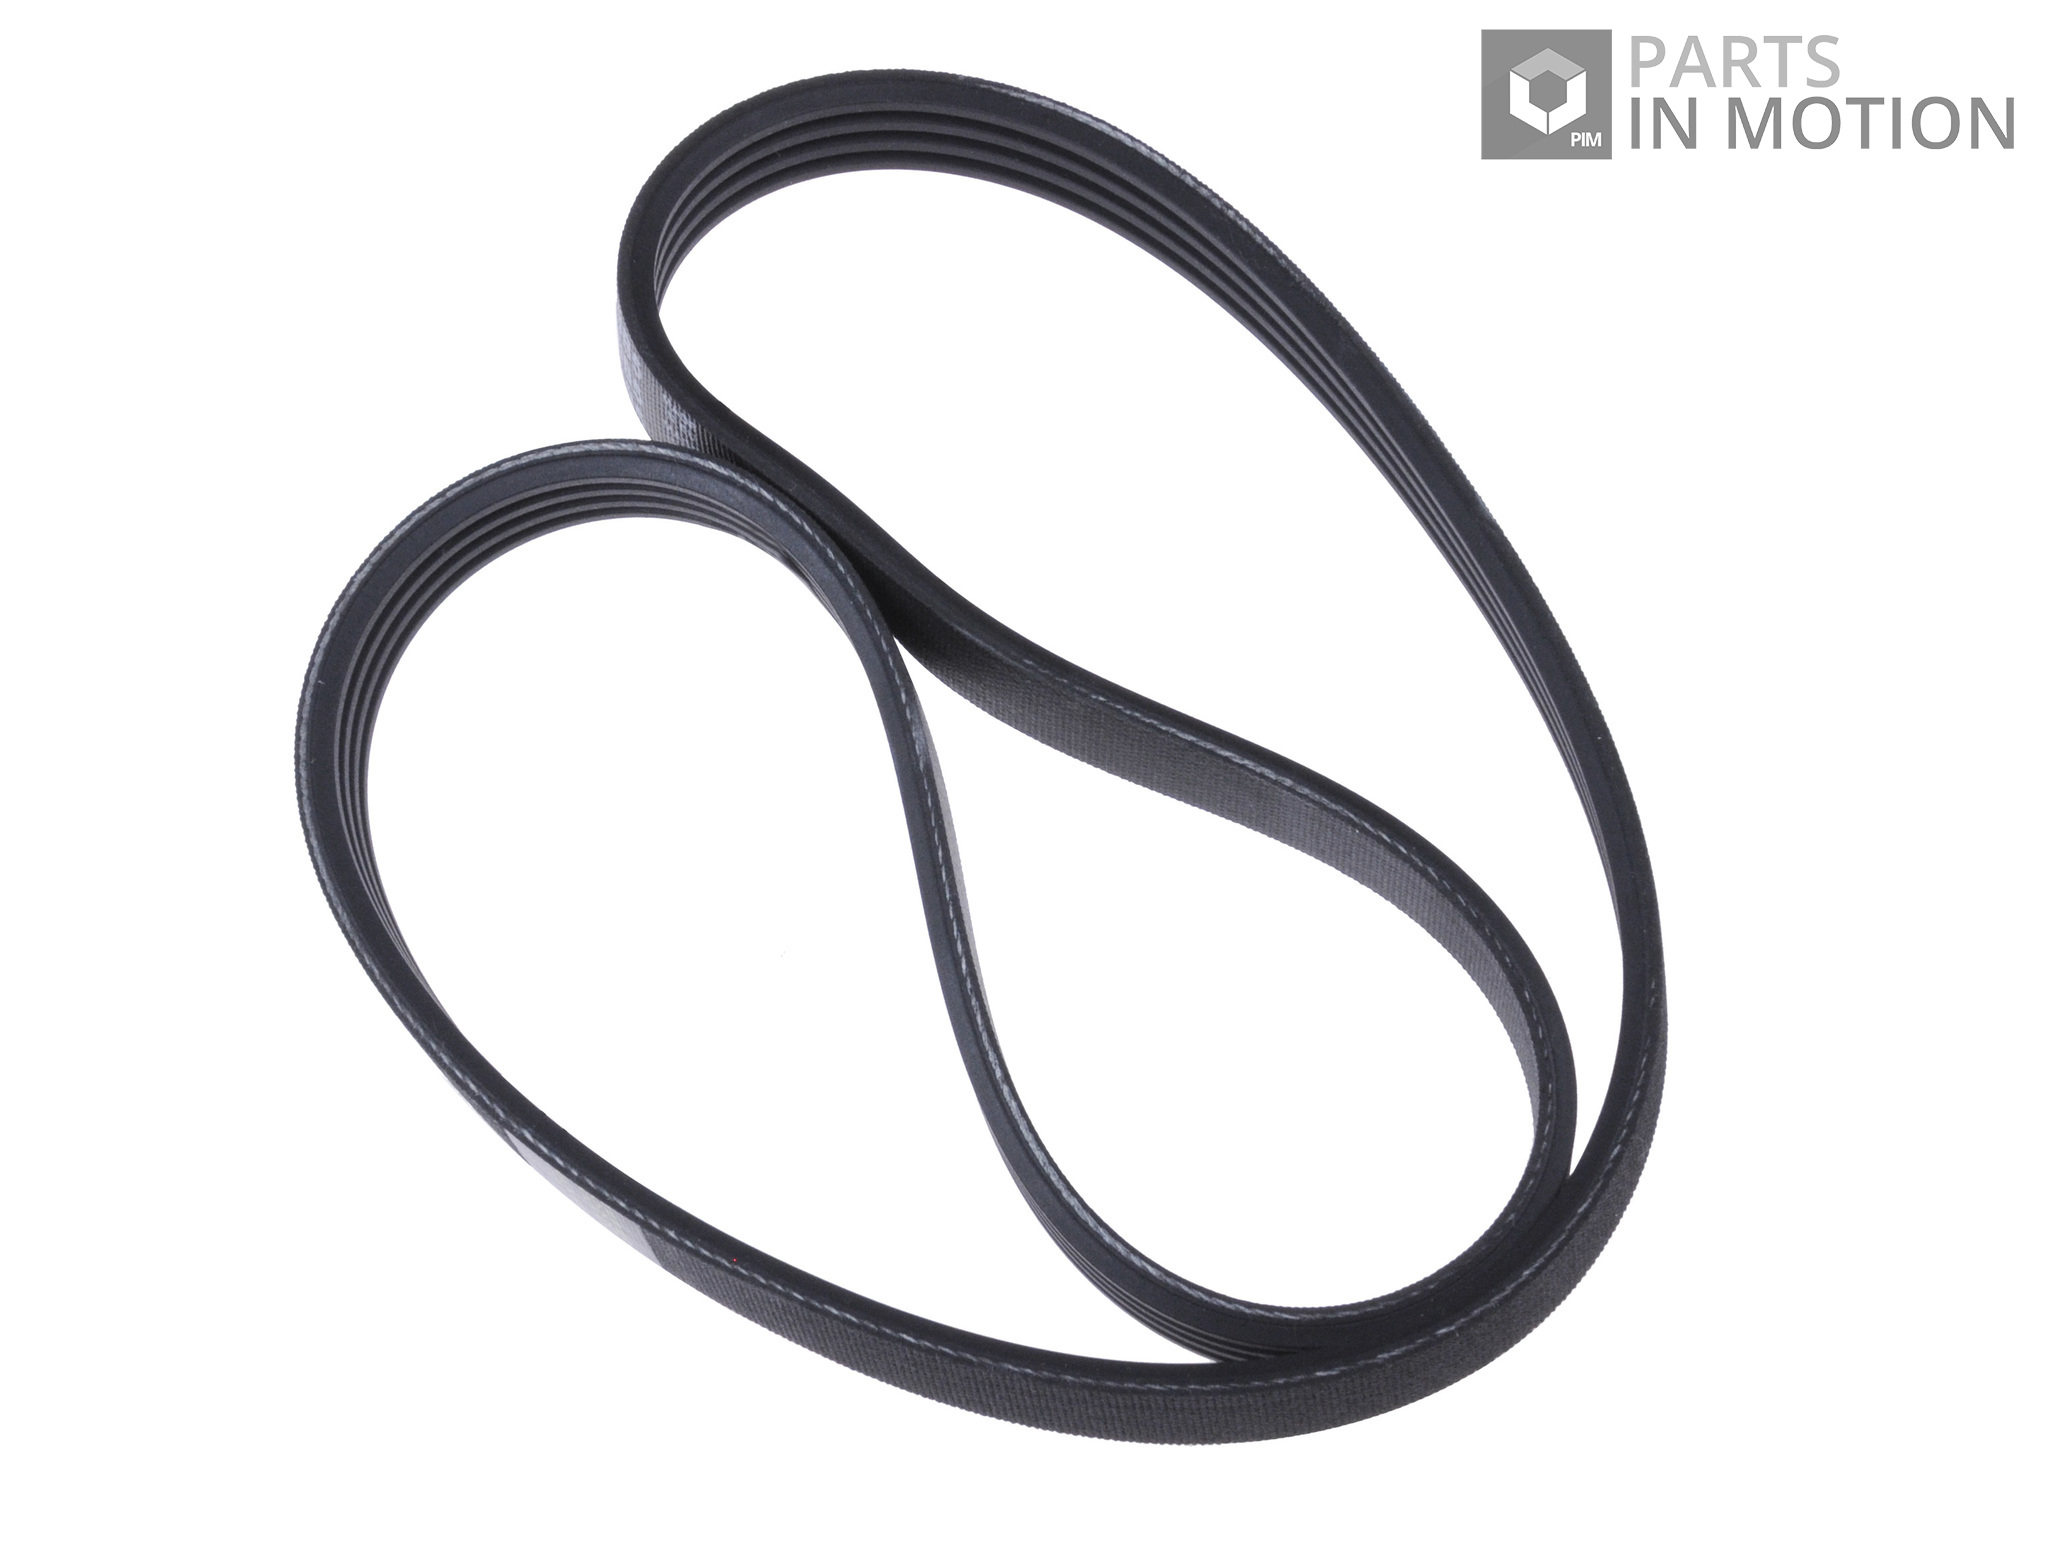 CHEVROLET SPARK 1.2 Multi V Drive Belt 2010 on AD04R840 Auxiliary Ribbed New